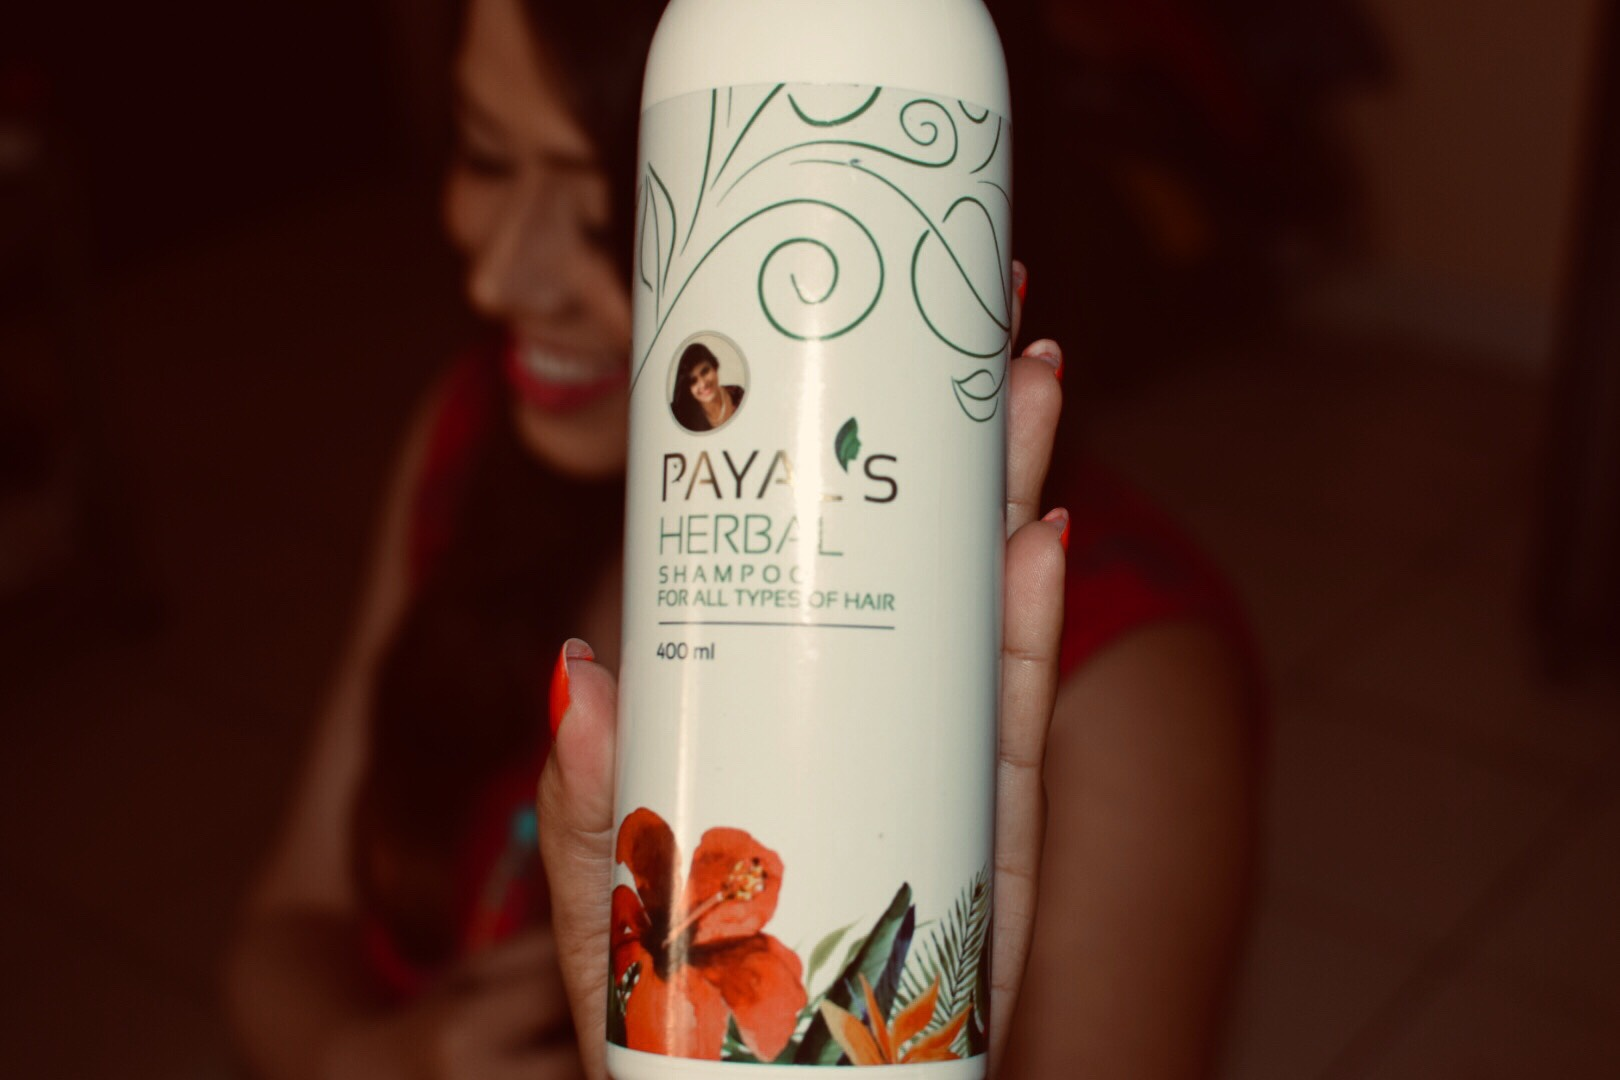 Payal's Herbal Shampoo